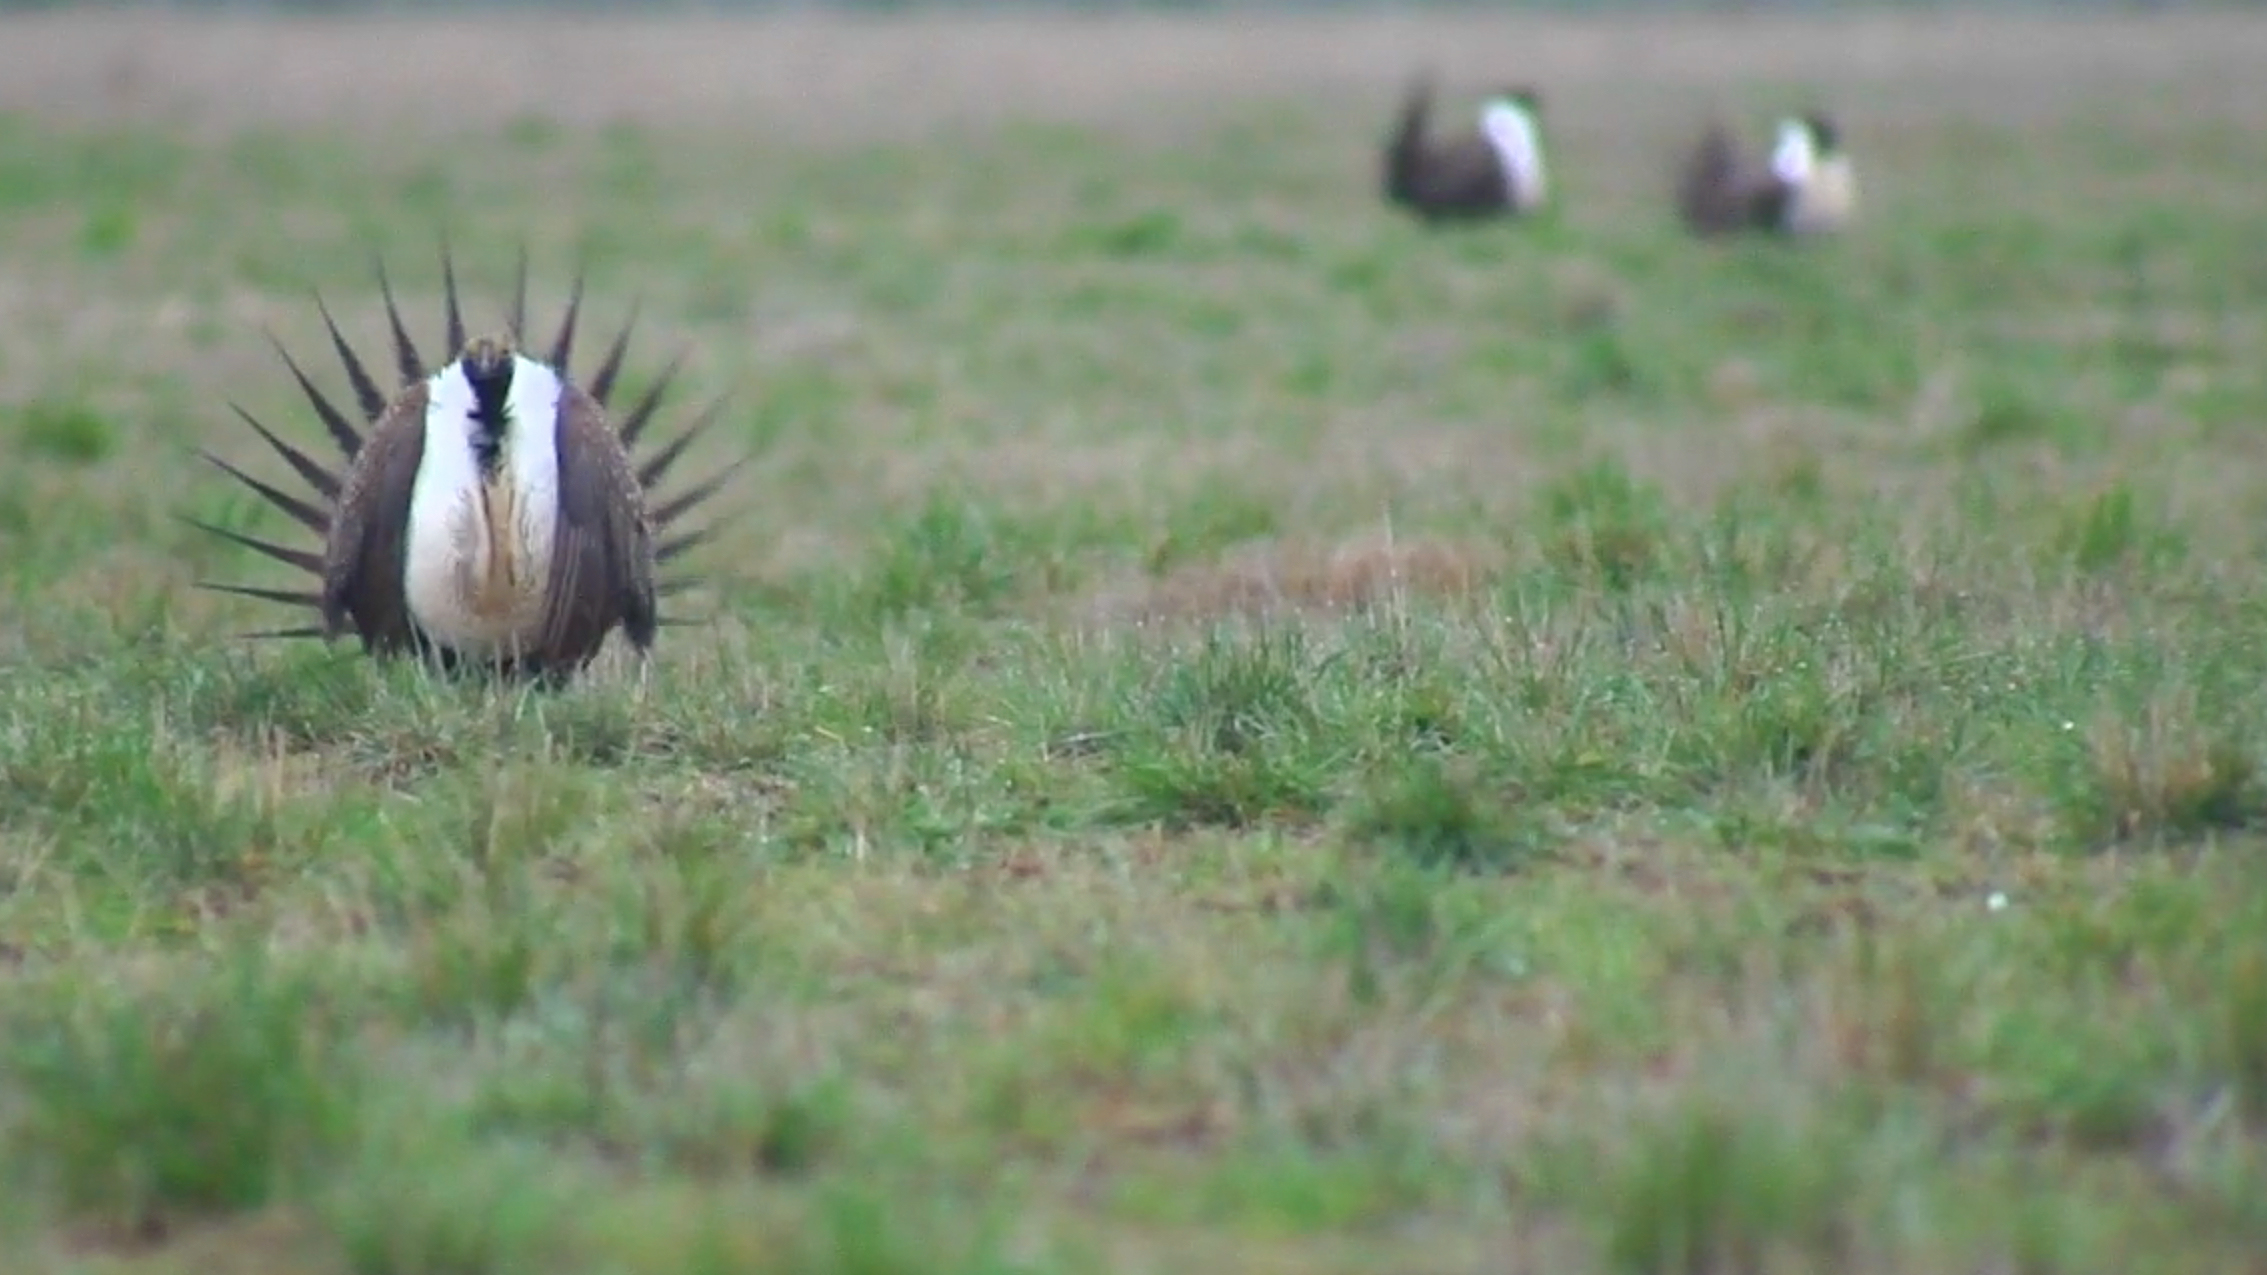 Can Sage Grouse Be Saved Without Shutting Down The West